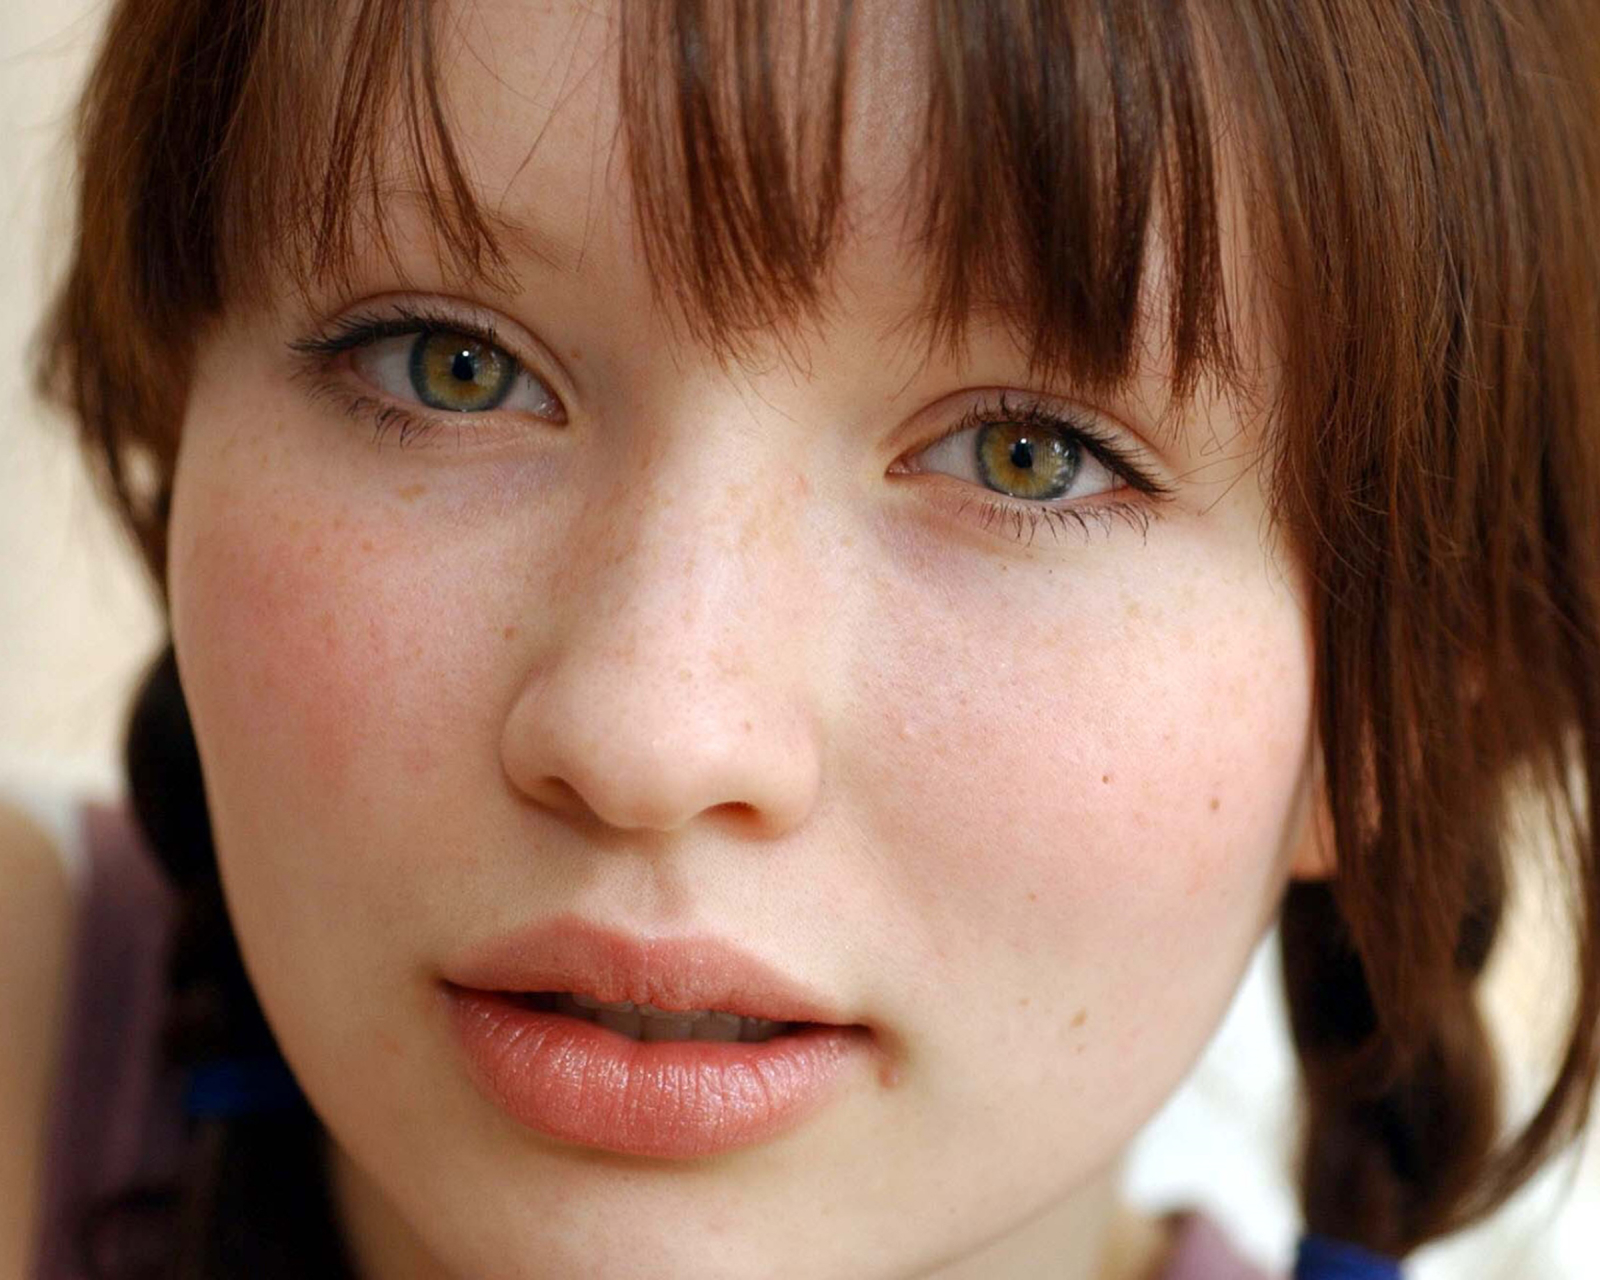 celebrity/emily browning (1600x1280) wallpaper id: 652758 - mobile abyss